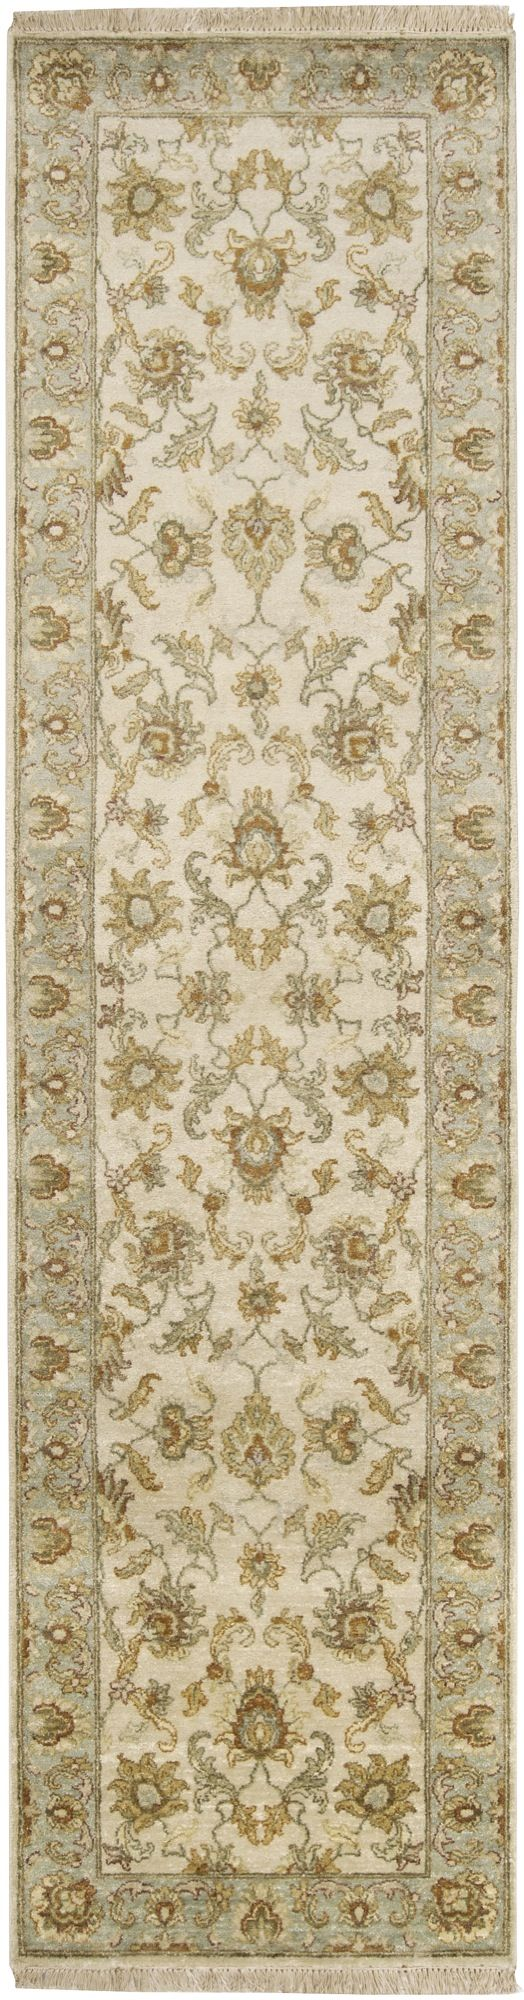 surya timeless traditional area rug collection